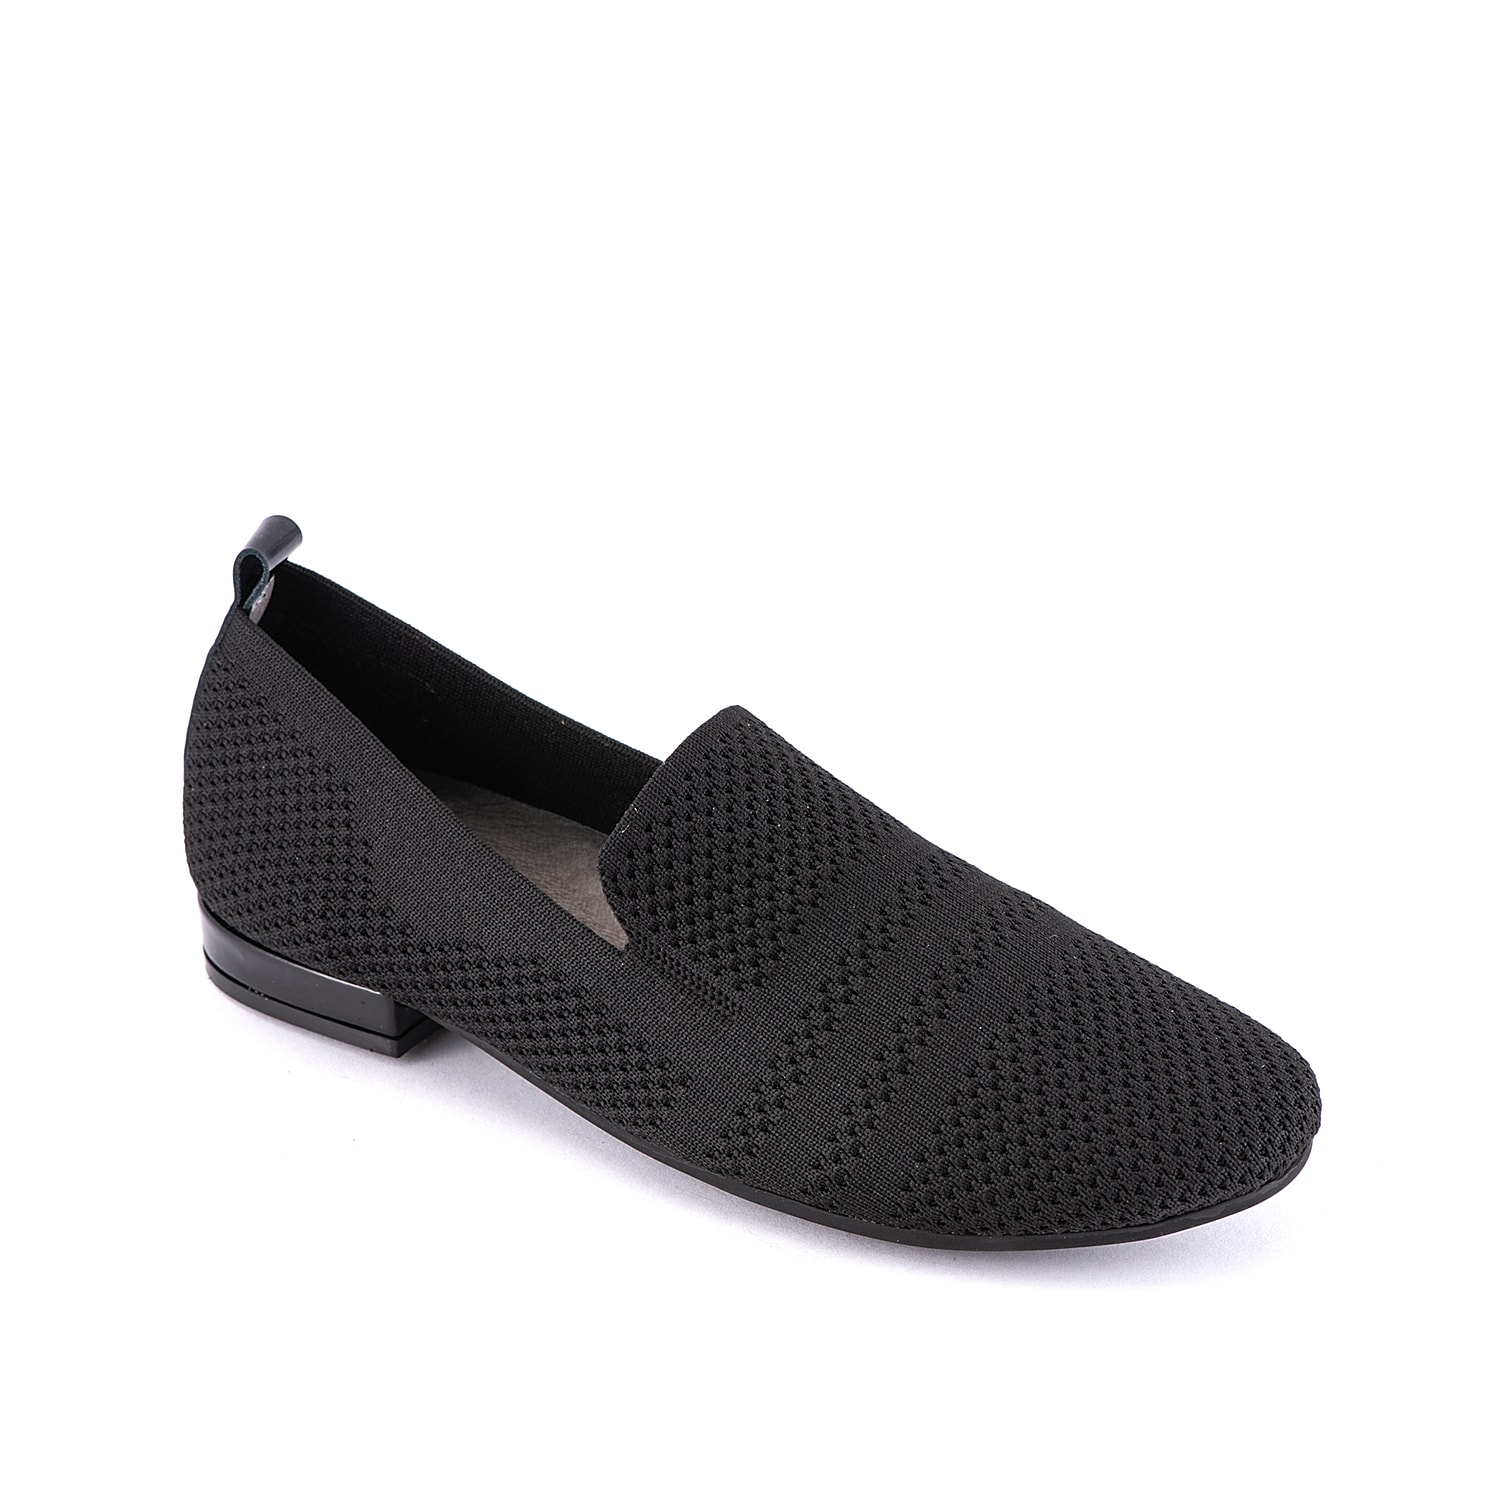 Give your ensemble a contemporary look with the Ulyssa loafer from David Tate. This slip-on is fashioned with a stretch fabric upper and compliments dress pants or vintage jeans for a versatile look!